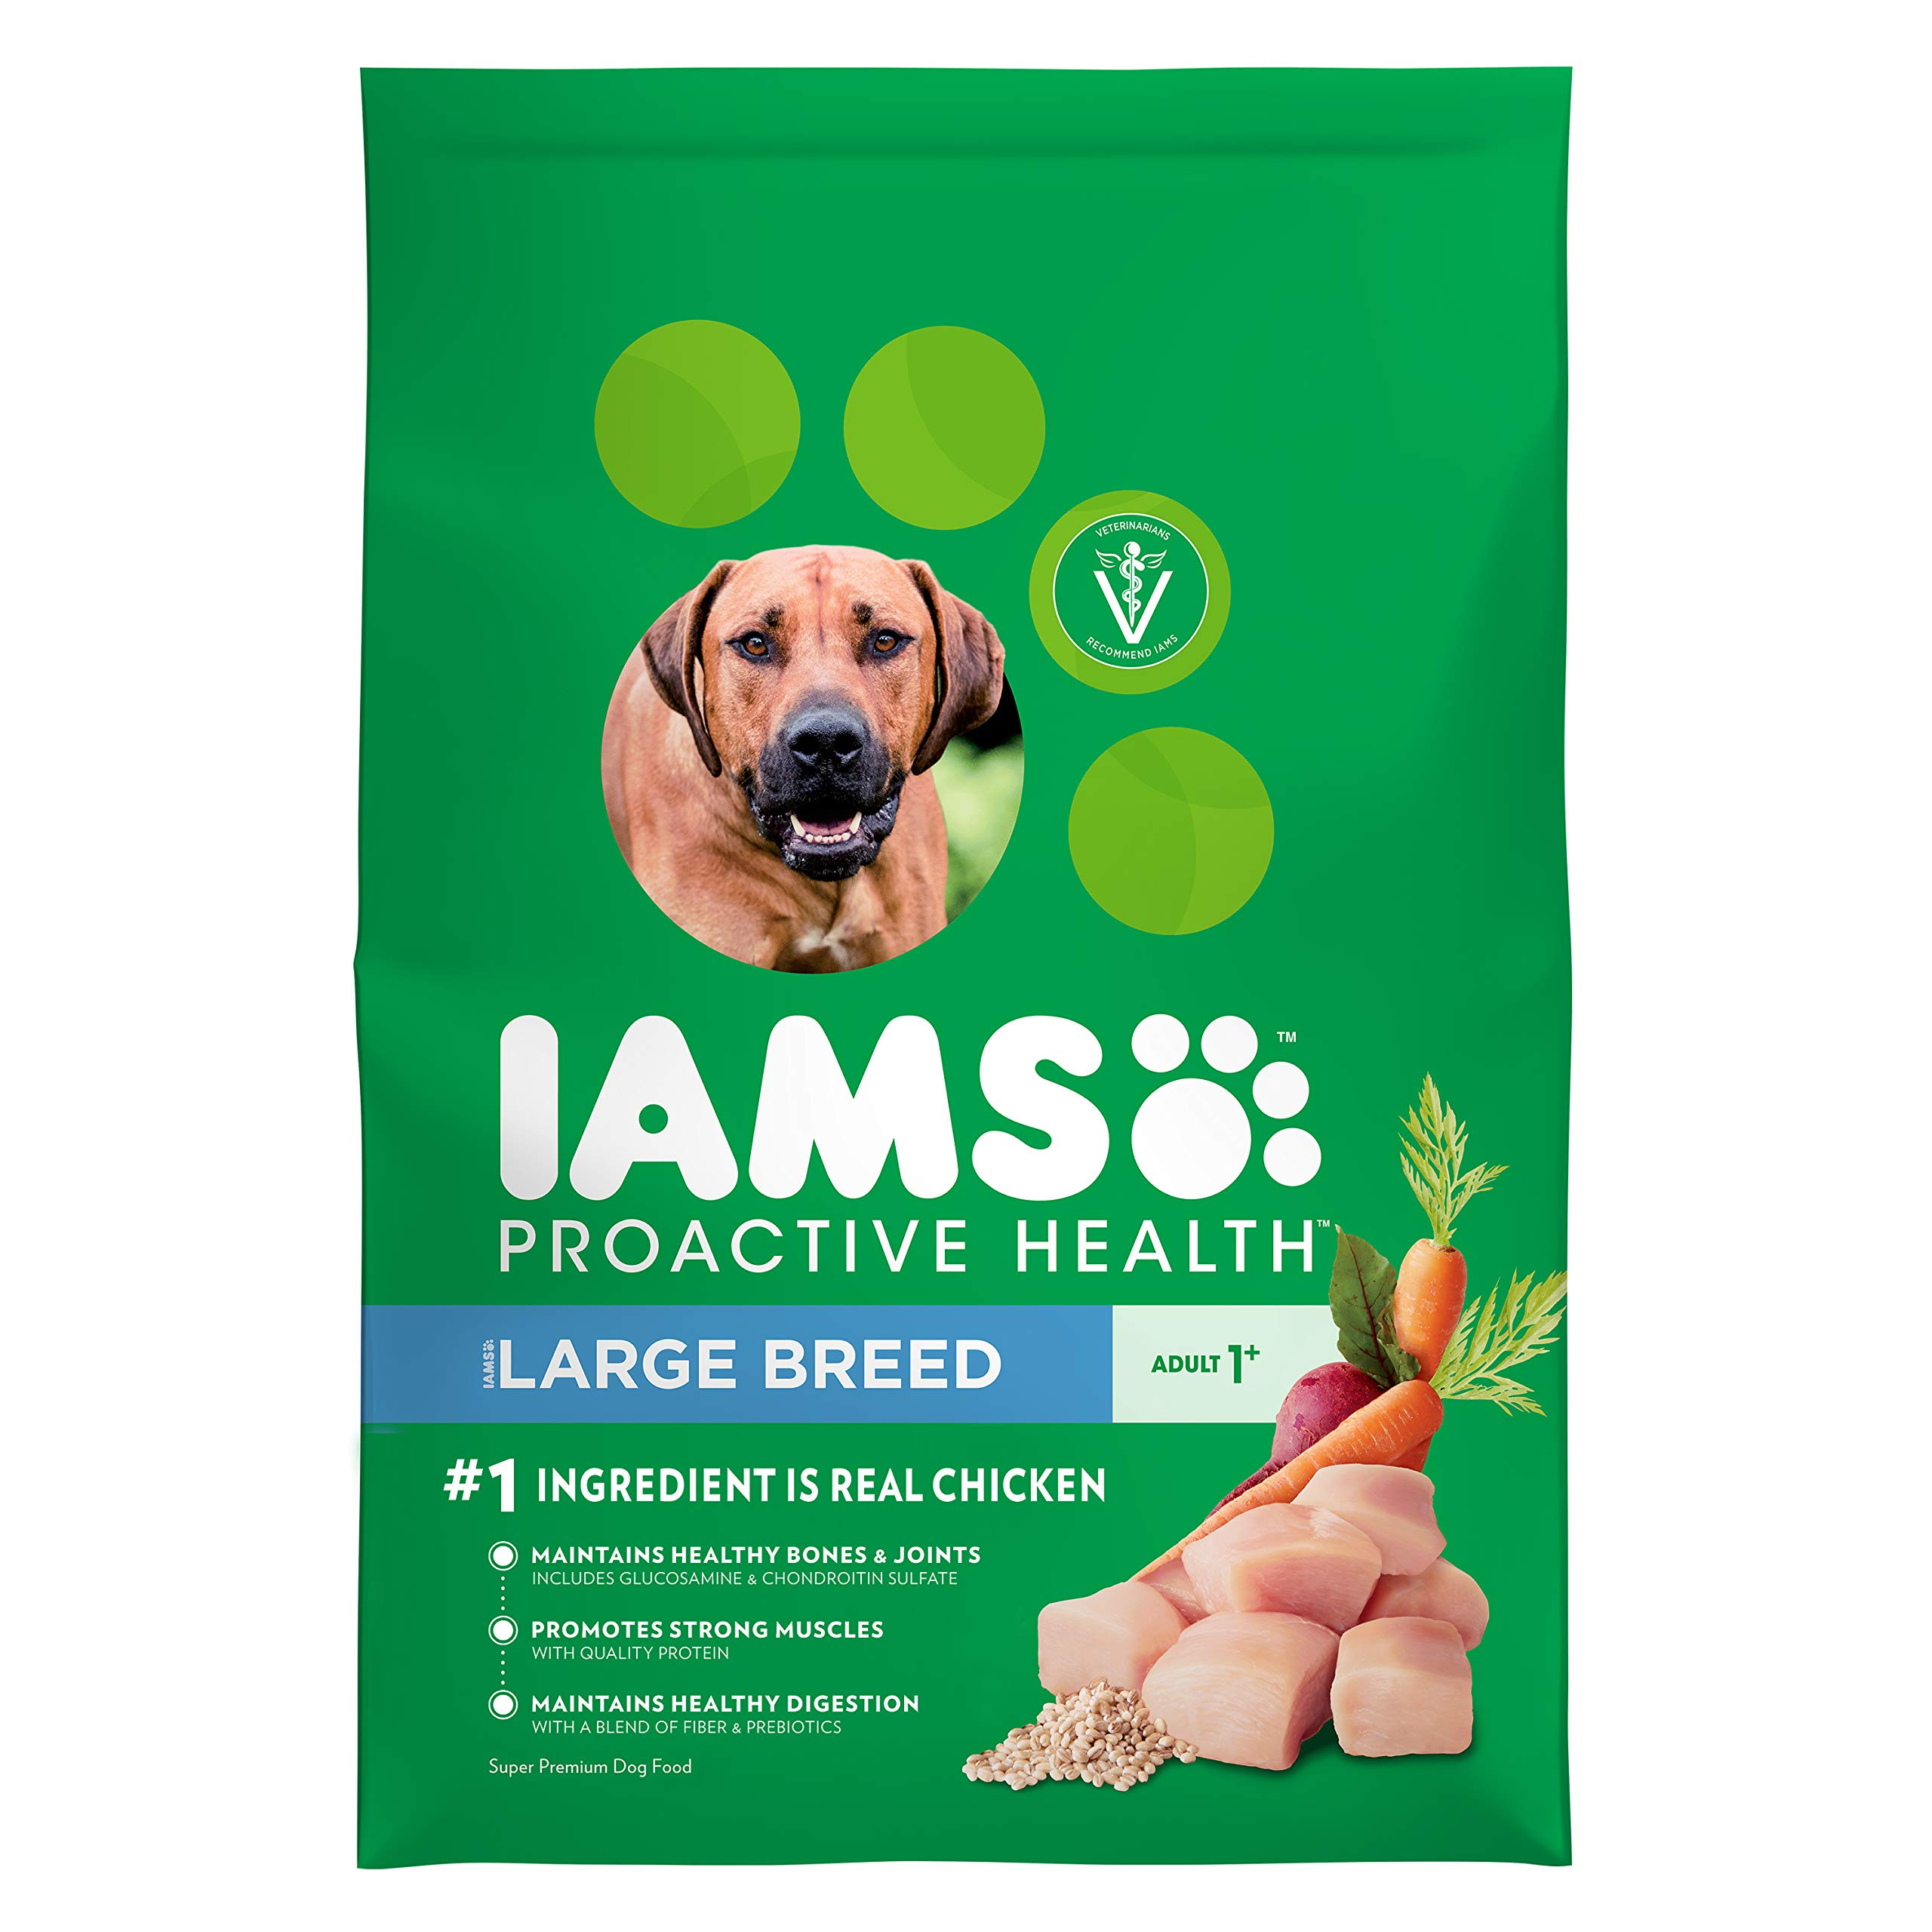 IAMS PROACTIVE HEALTH Adult High Protein Large Breed Dry Dog Food with Real Chicken, 30 lb. Bag by Iams